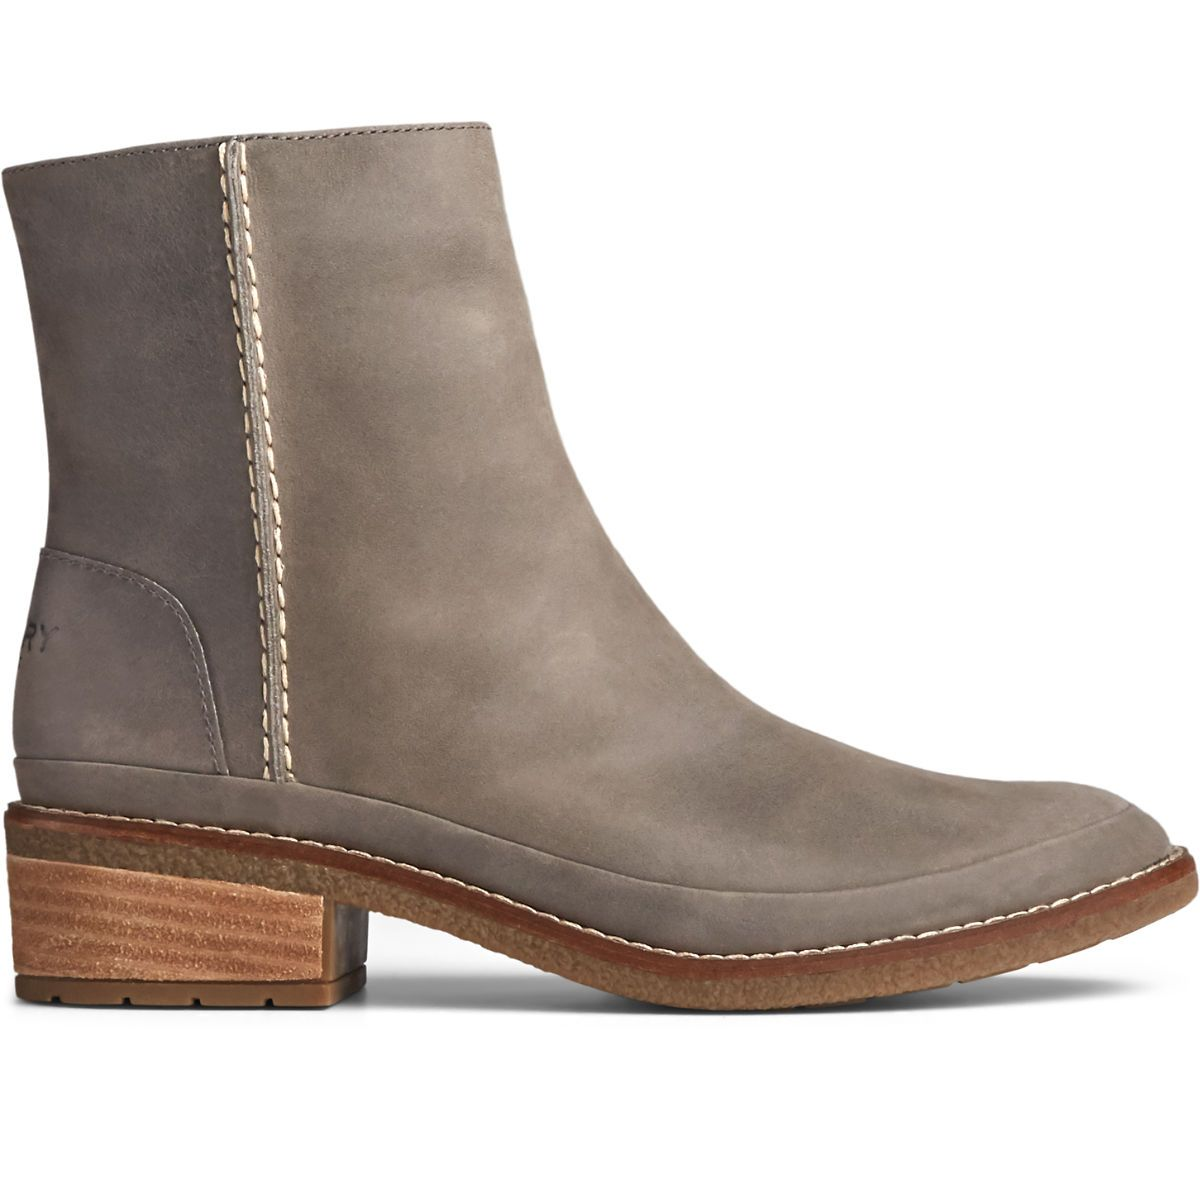 Your closet needs it (okay, you need it) - a pair of boots that will do it all. Goes-with-literally-everything suede and a full zipper mean you can easily swap your jeans for a midi skirt without ever changing your shoes.